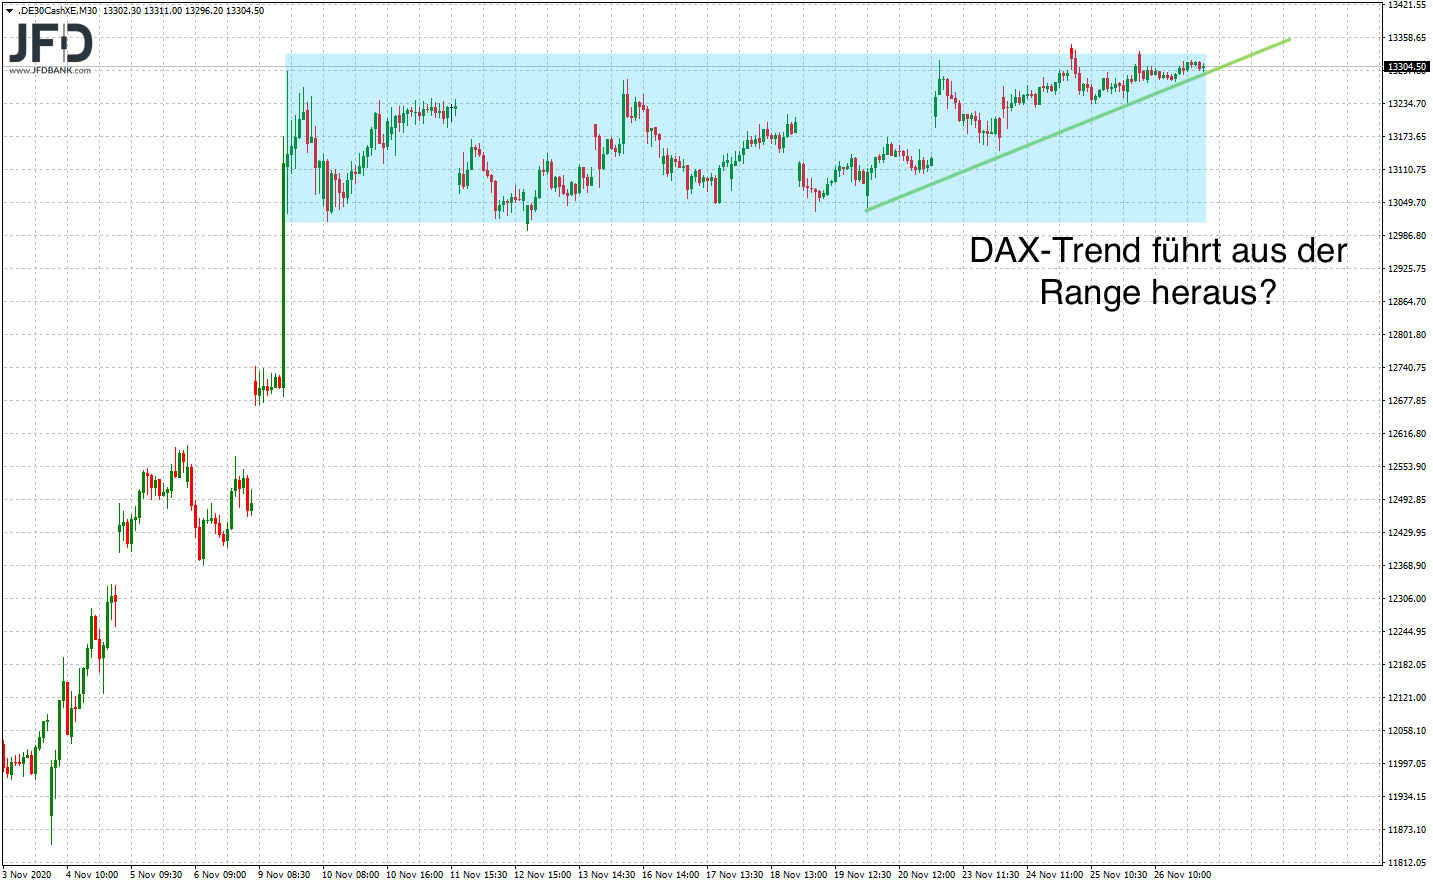 20201127_dax_xetra_range_trend.png